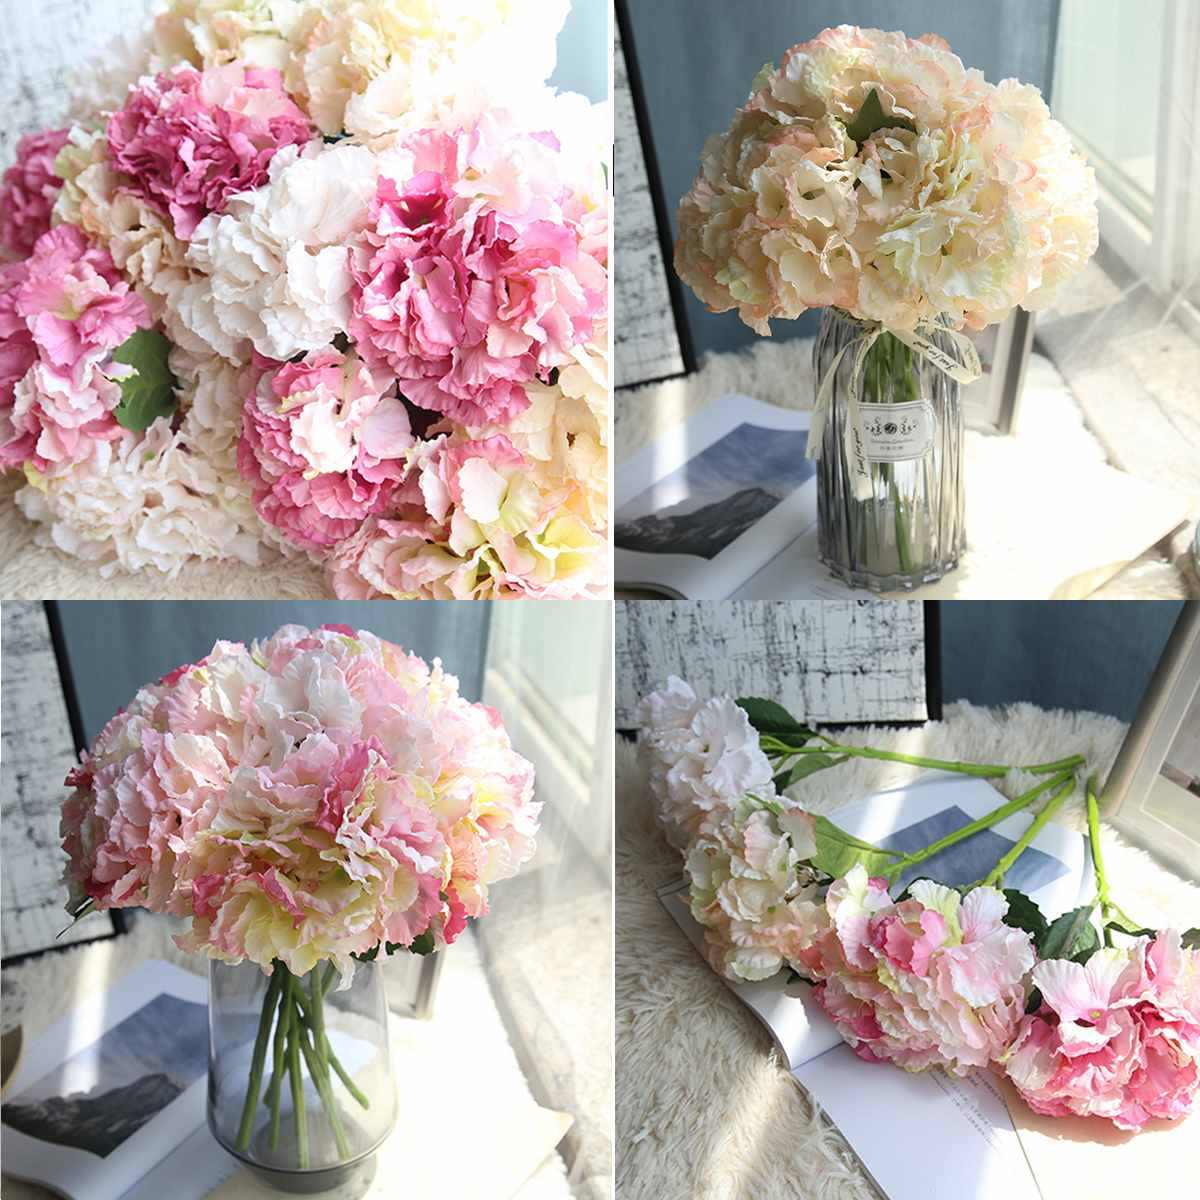 NEW Artificial Flower Ins Wedding Backdrops Desk Crafts Flowers Fake Silk Flowers Bridal Hydrangea for Party Home DIY Decoration